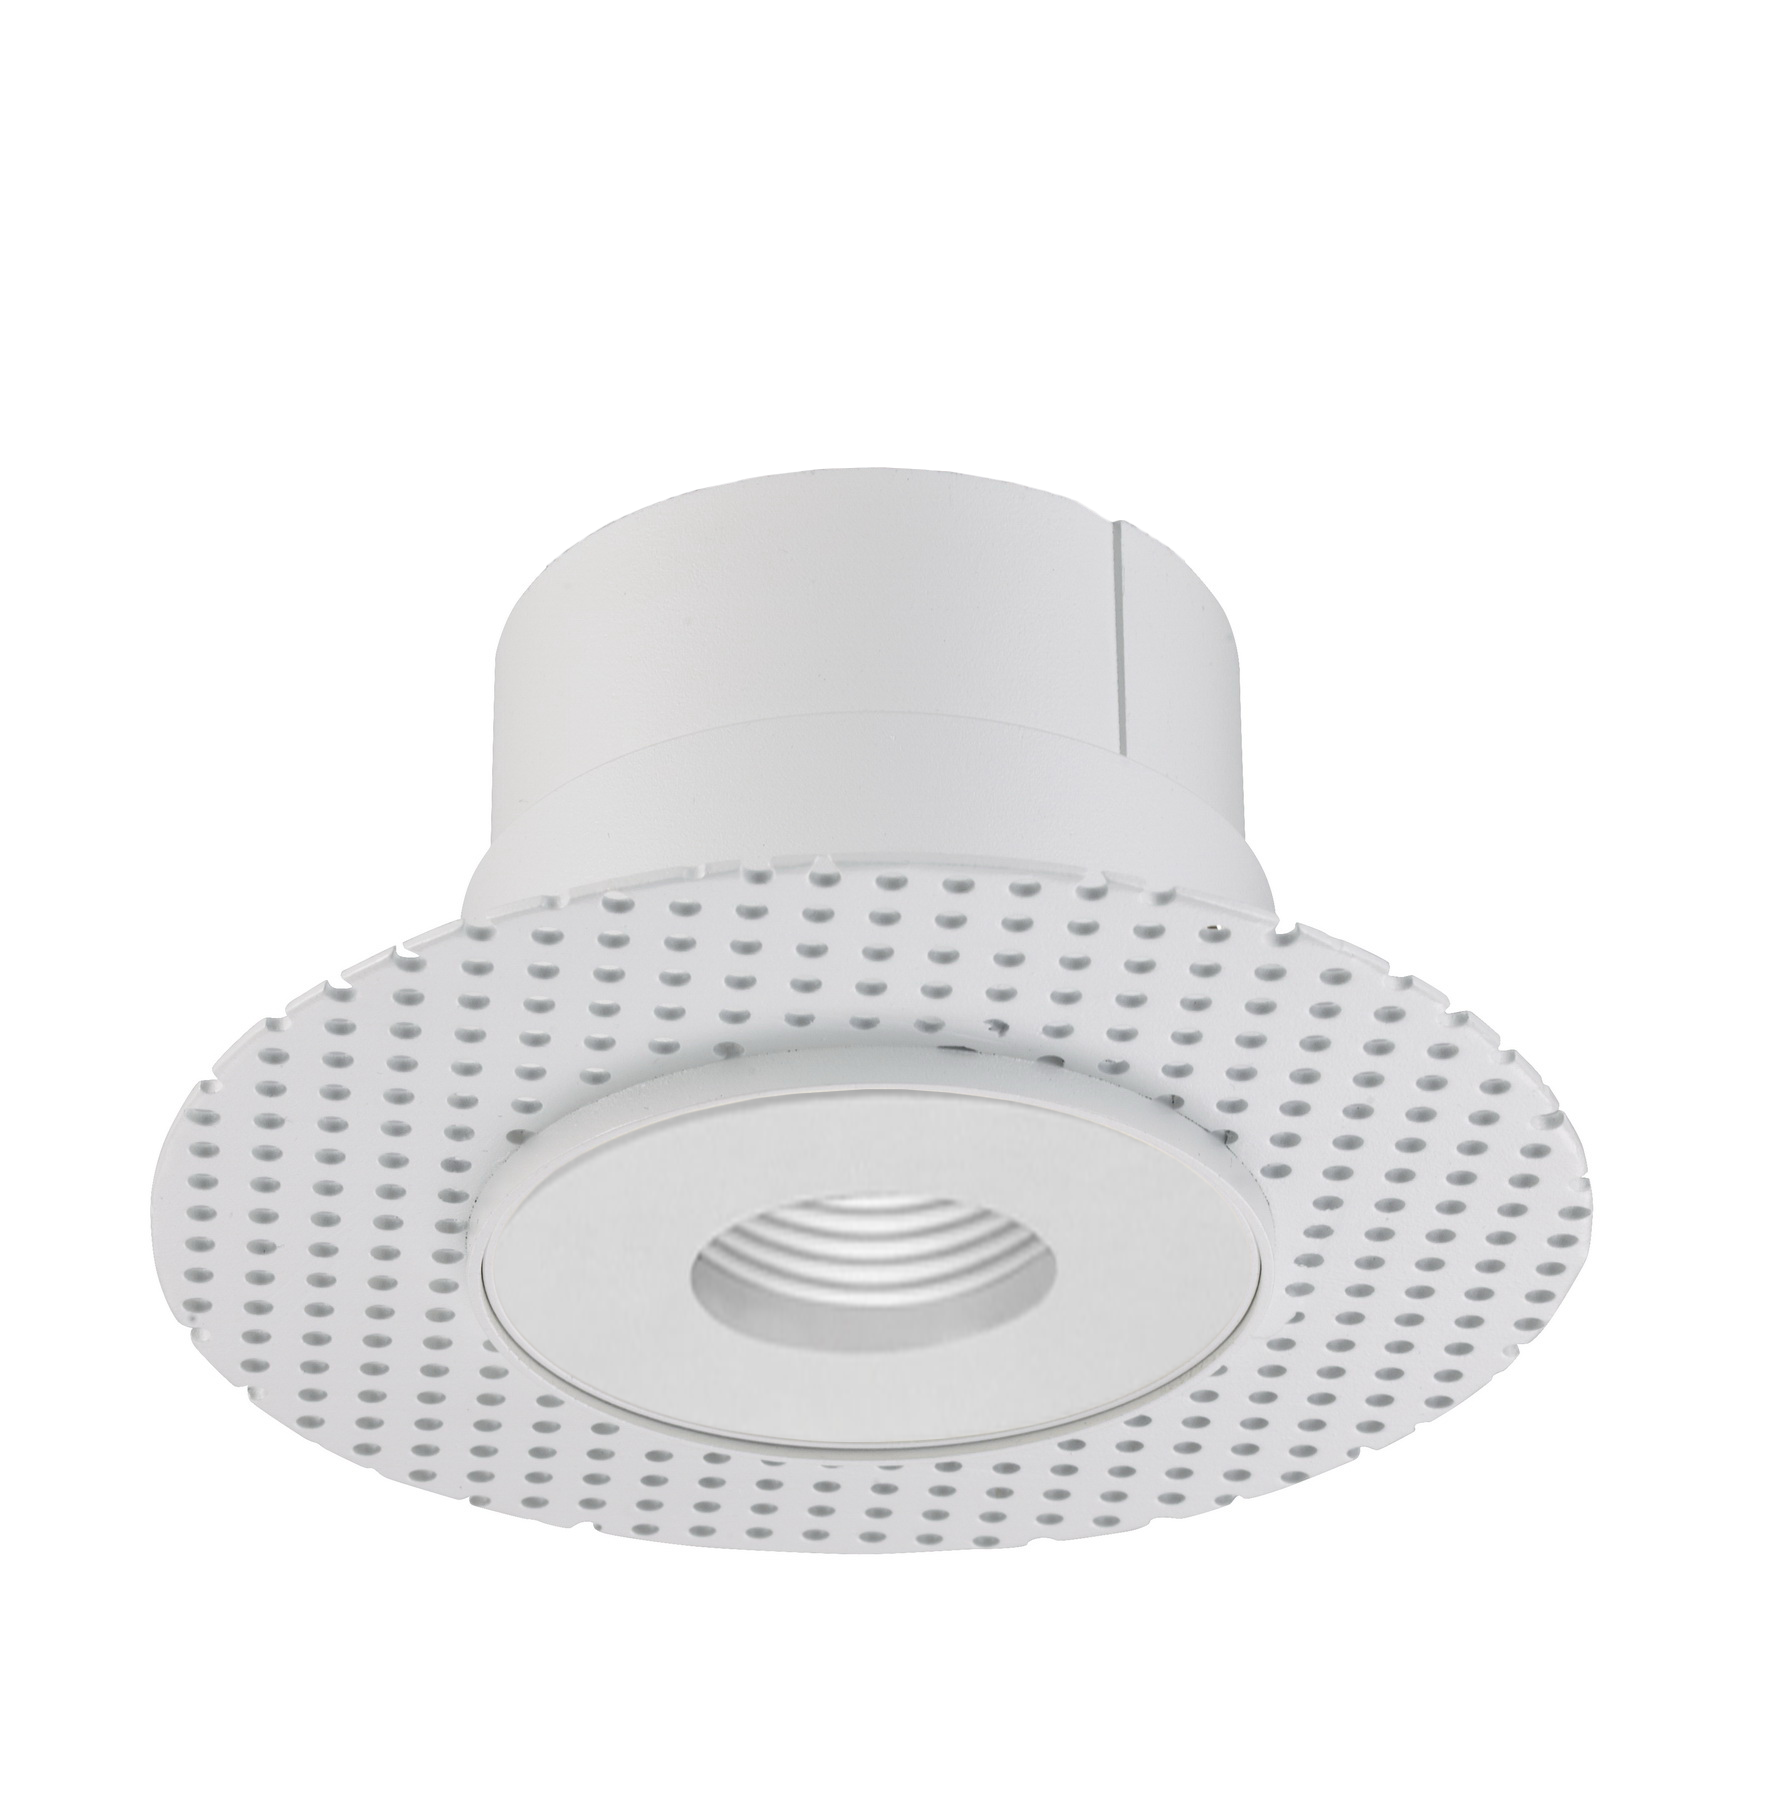 Alcon Lighting 14013 P Illusione 4 Inch Architectural Led Round Trimless Recessed Pinhole Light Fixture